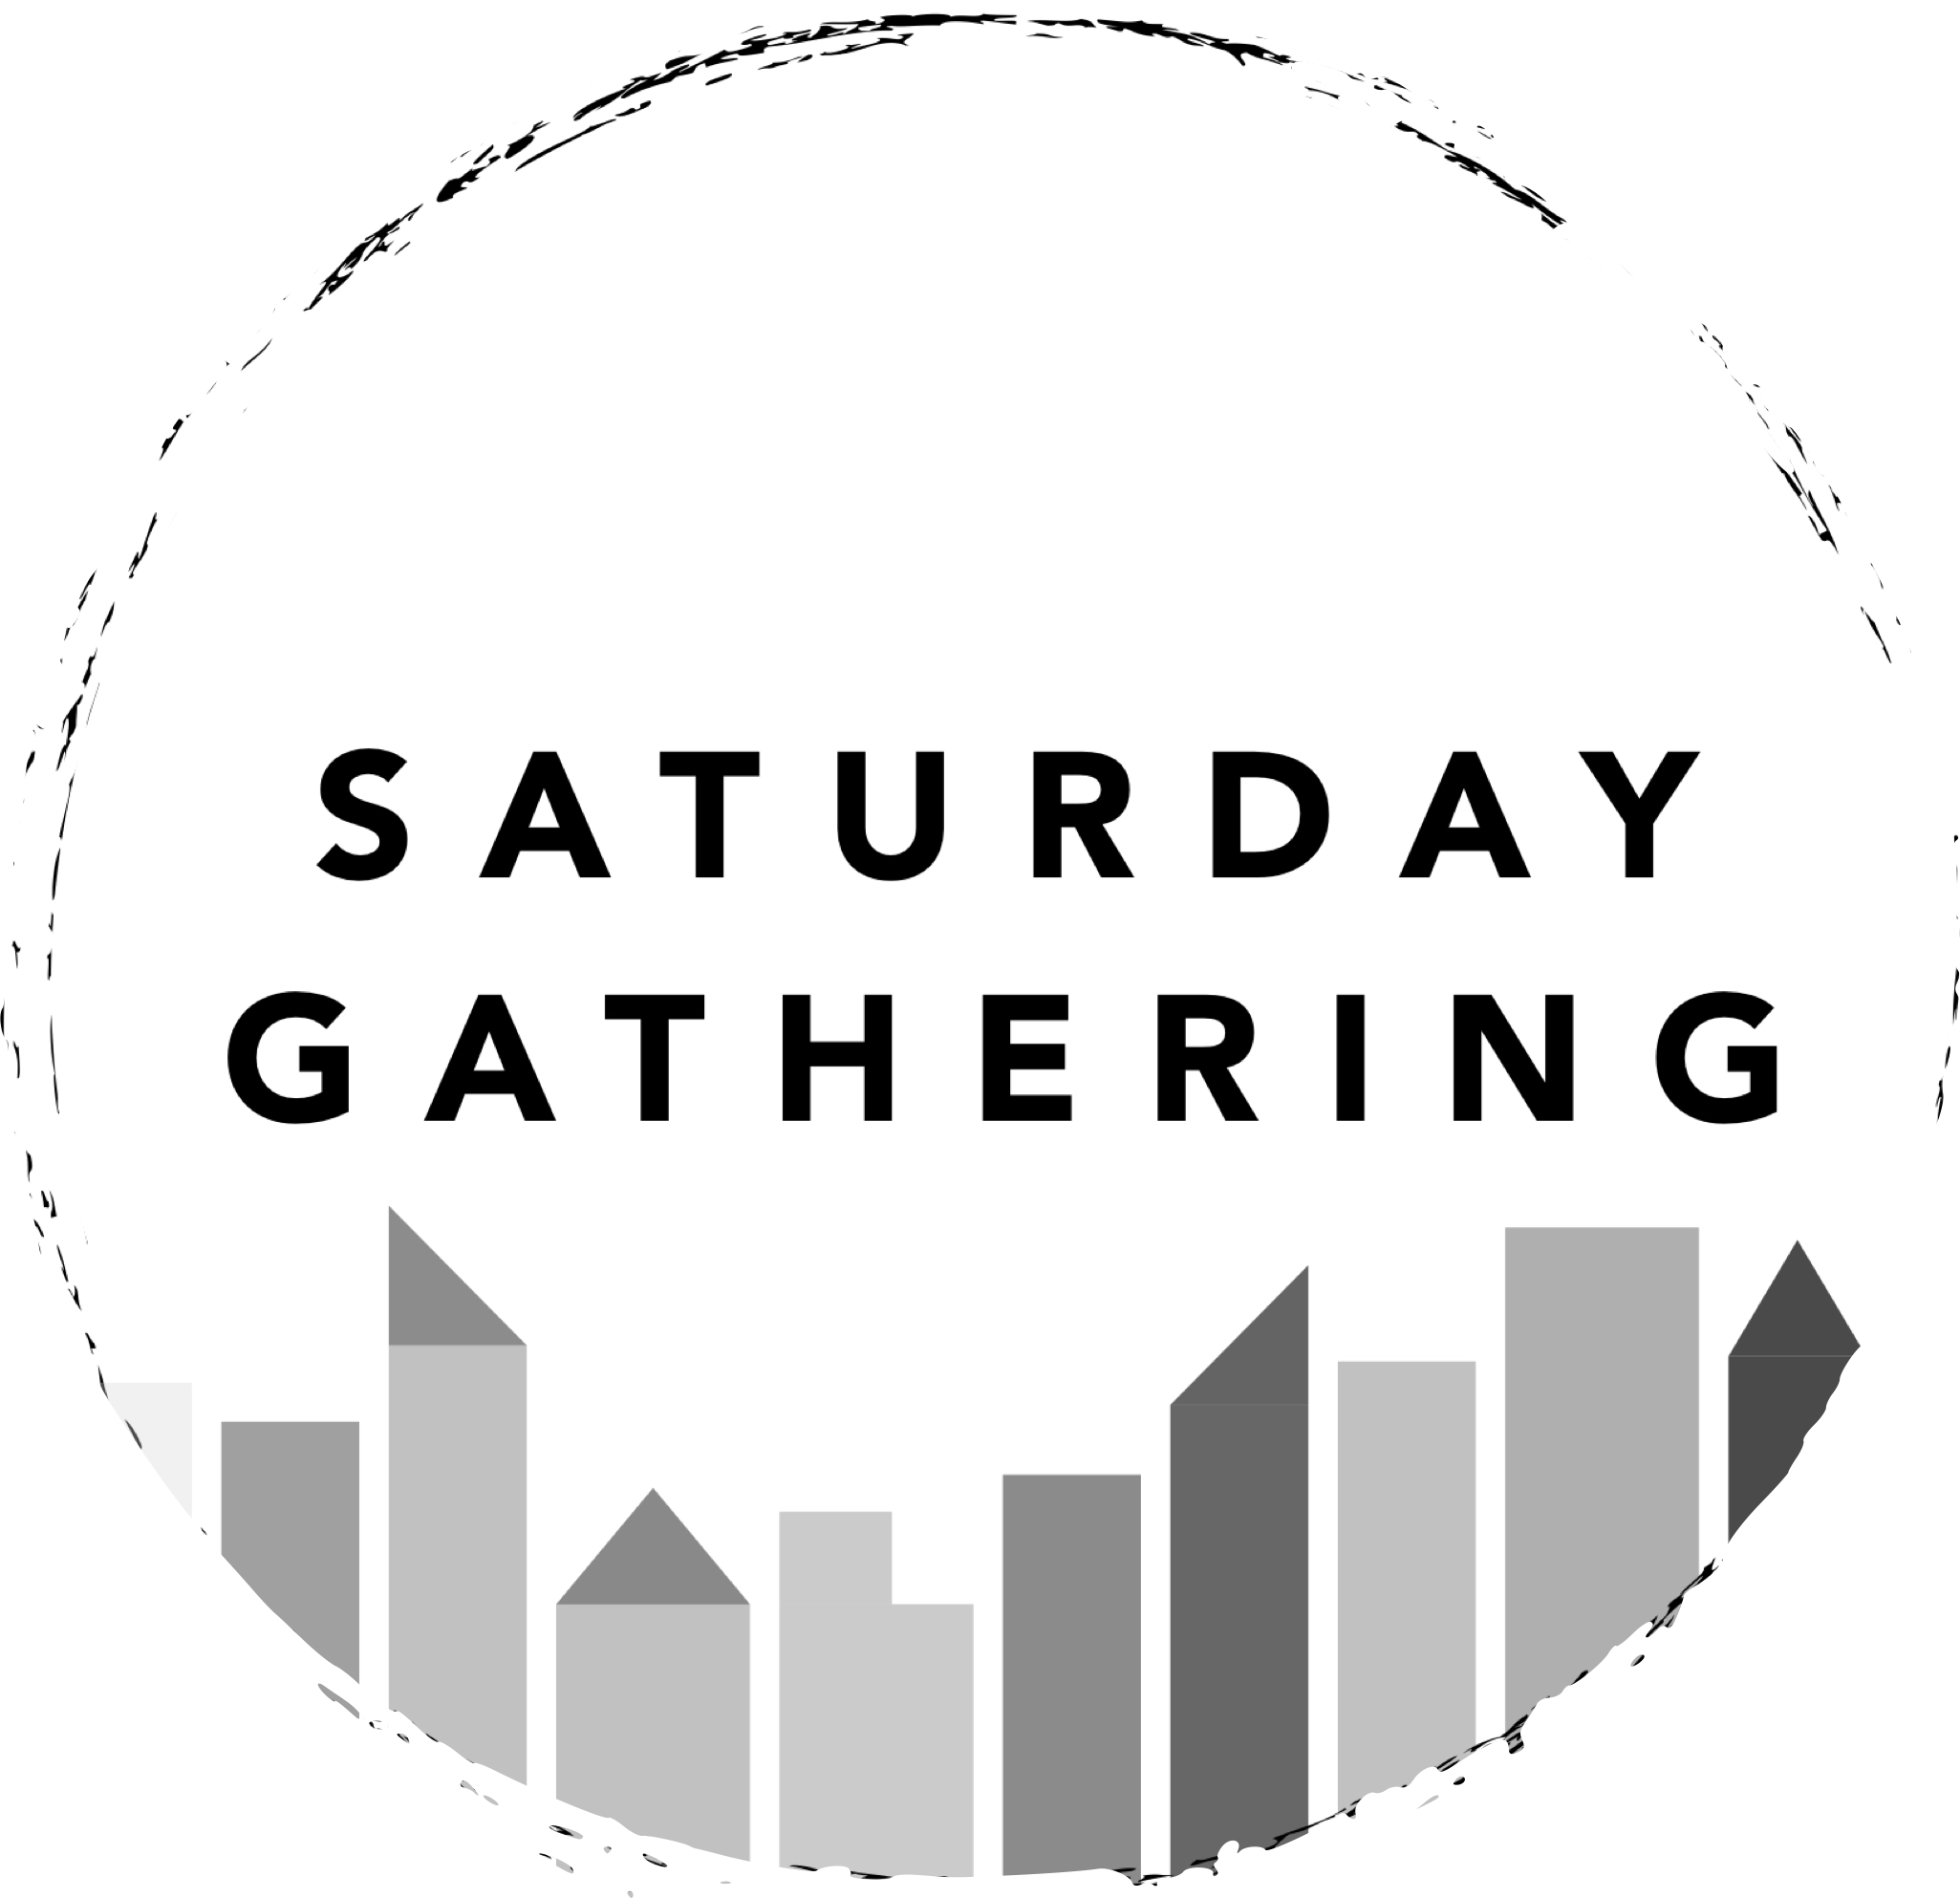 SATURDAY GATHERING